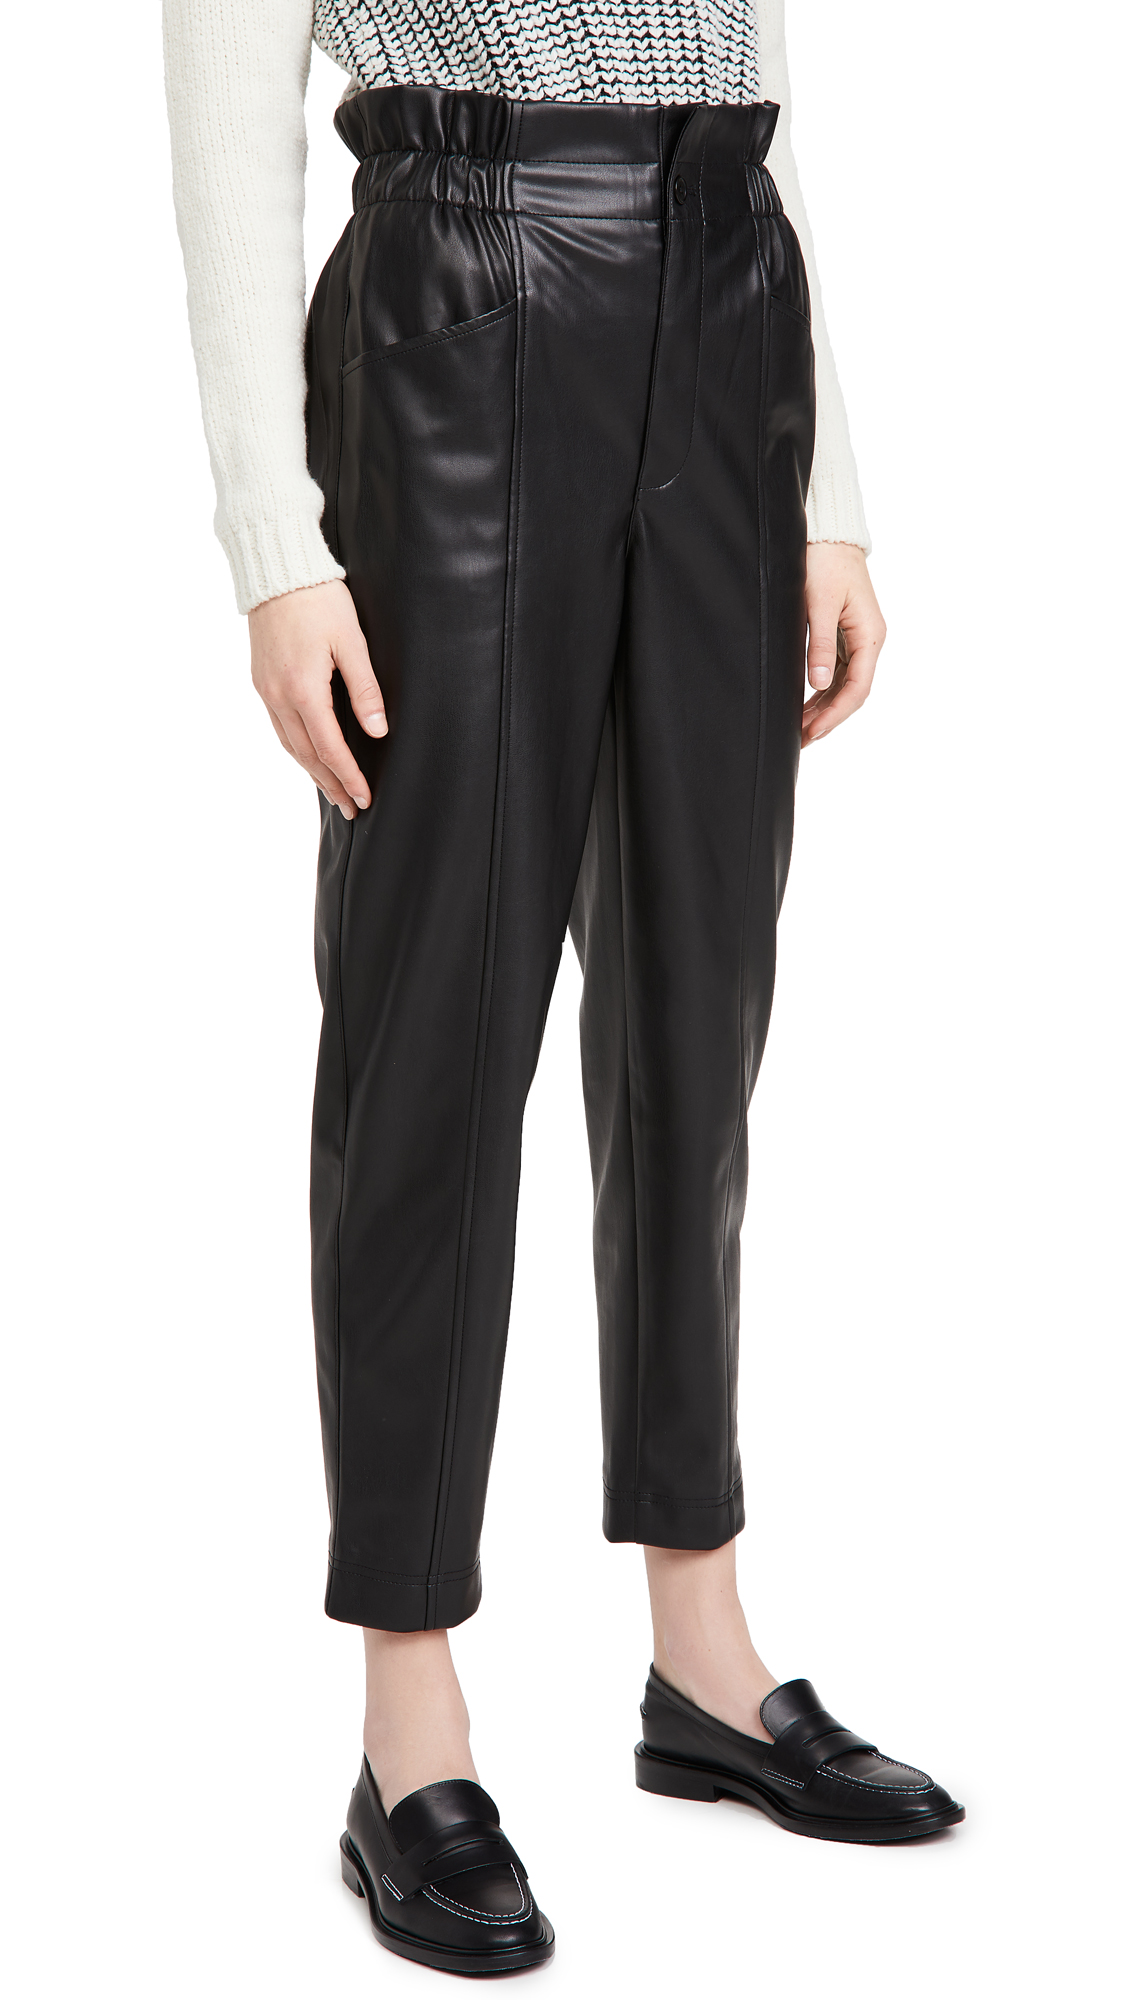 Madewell FAUX LEATHER TAPERED PANTS